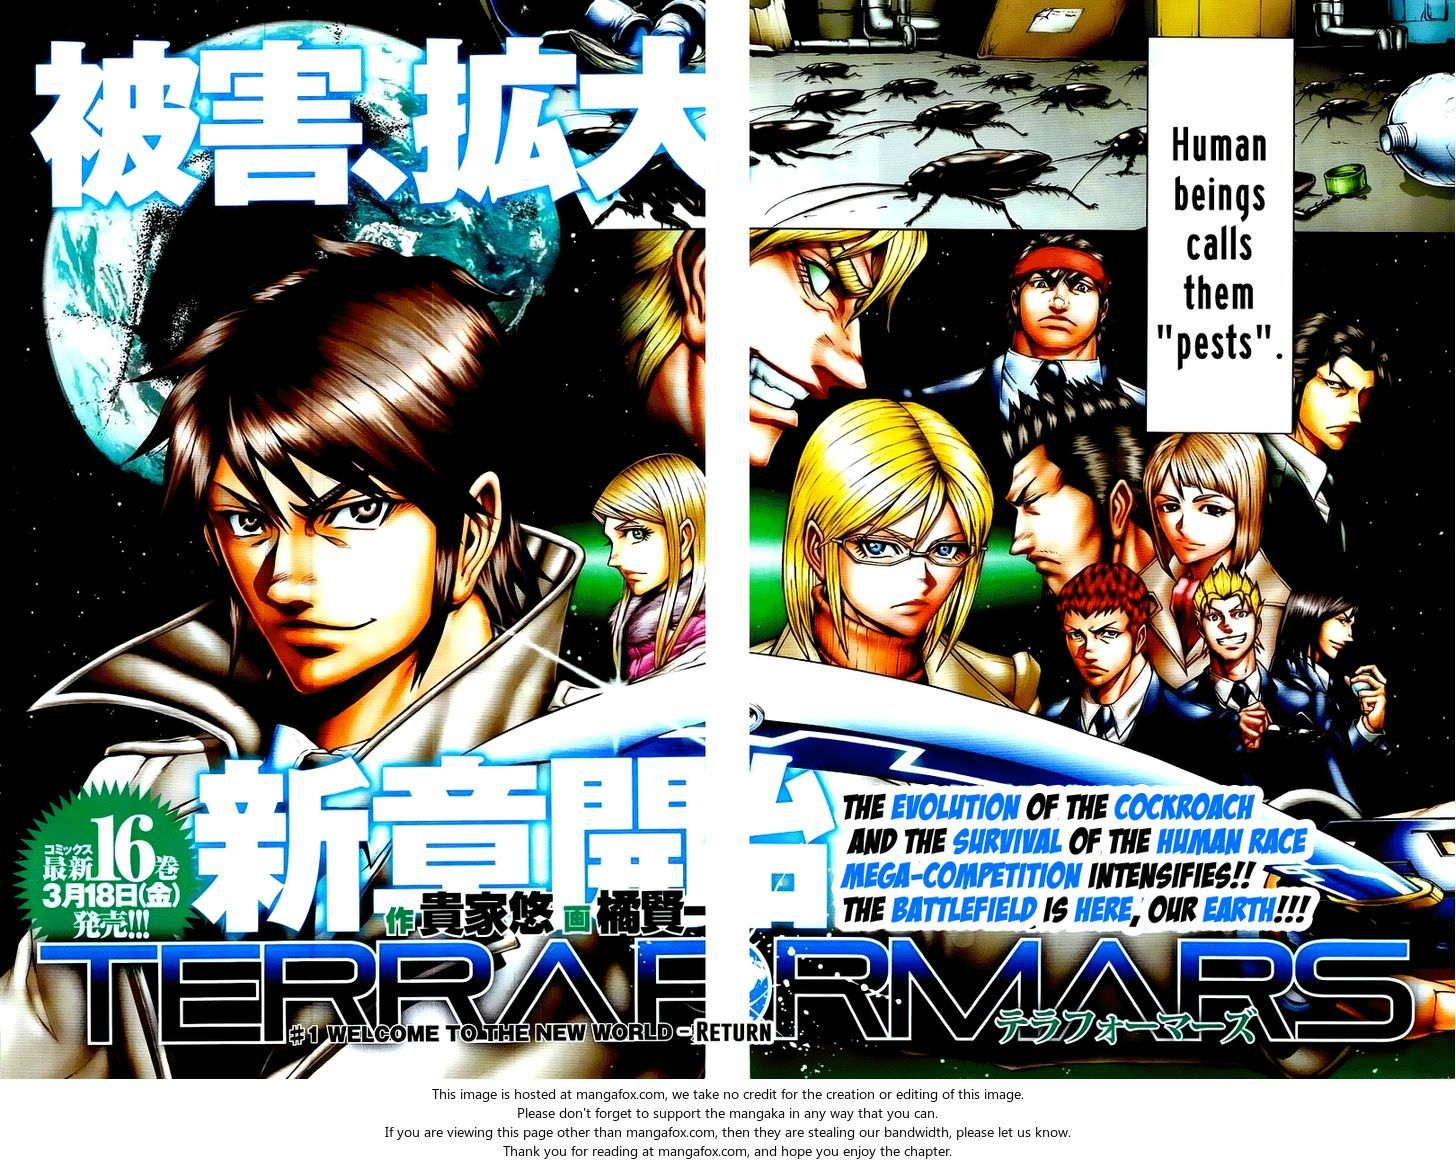 Terra Formars 174: WELCOME TO THE NEW WORLD - Return at MangaFox.me